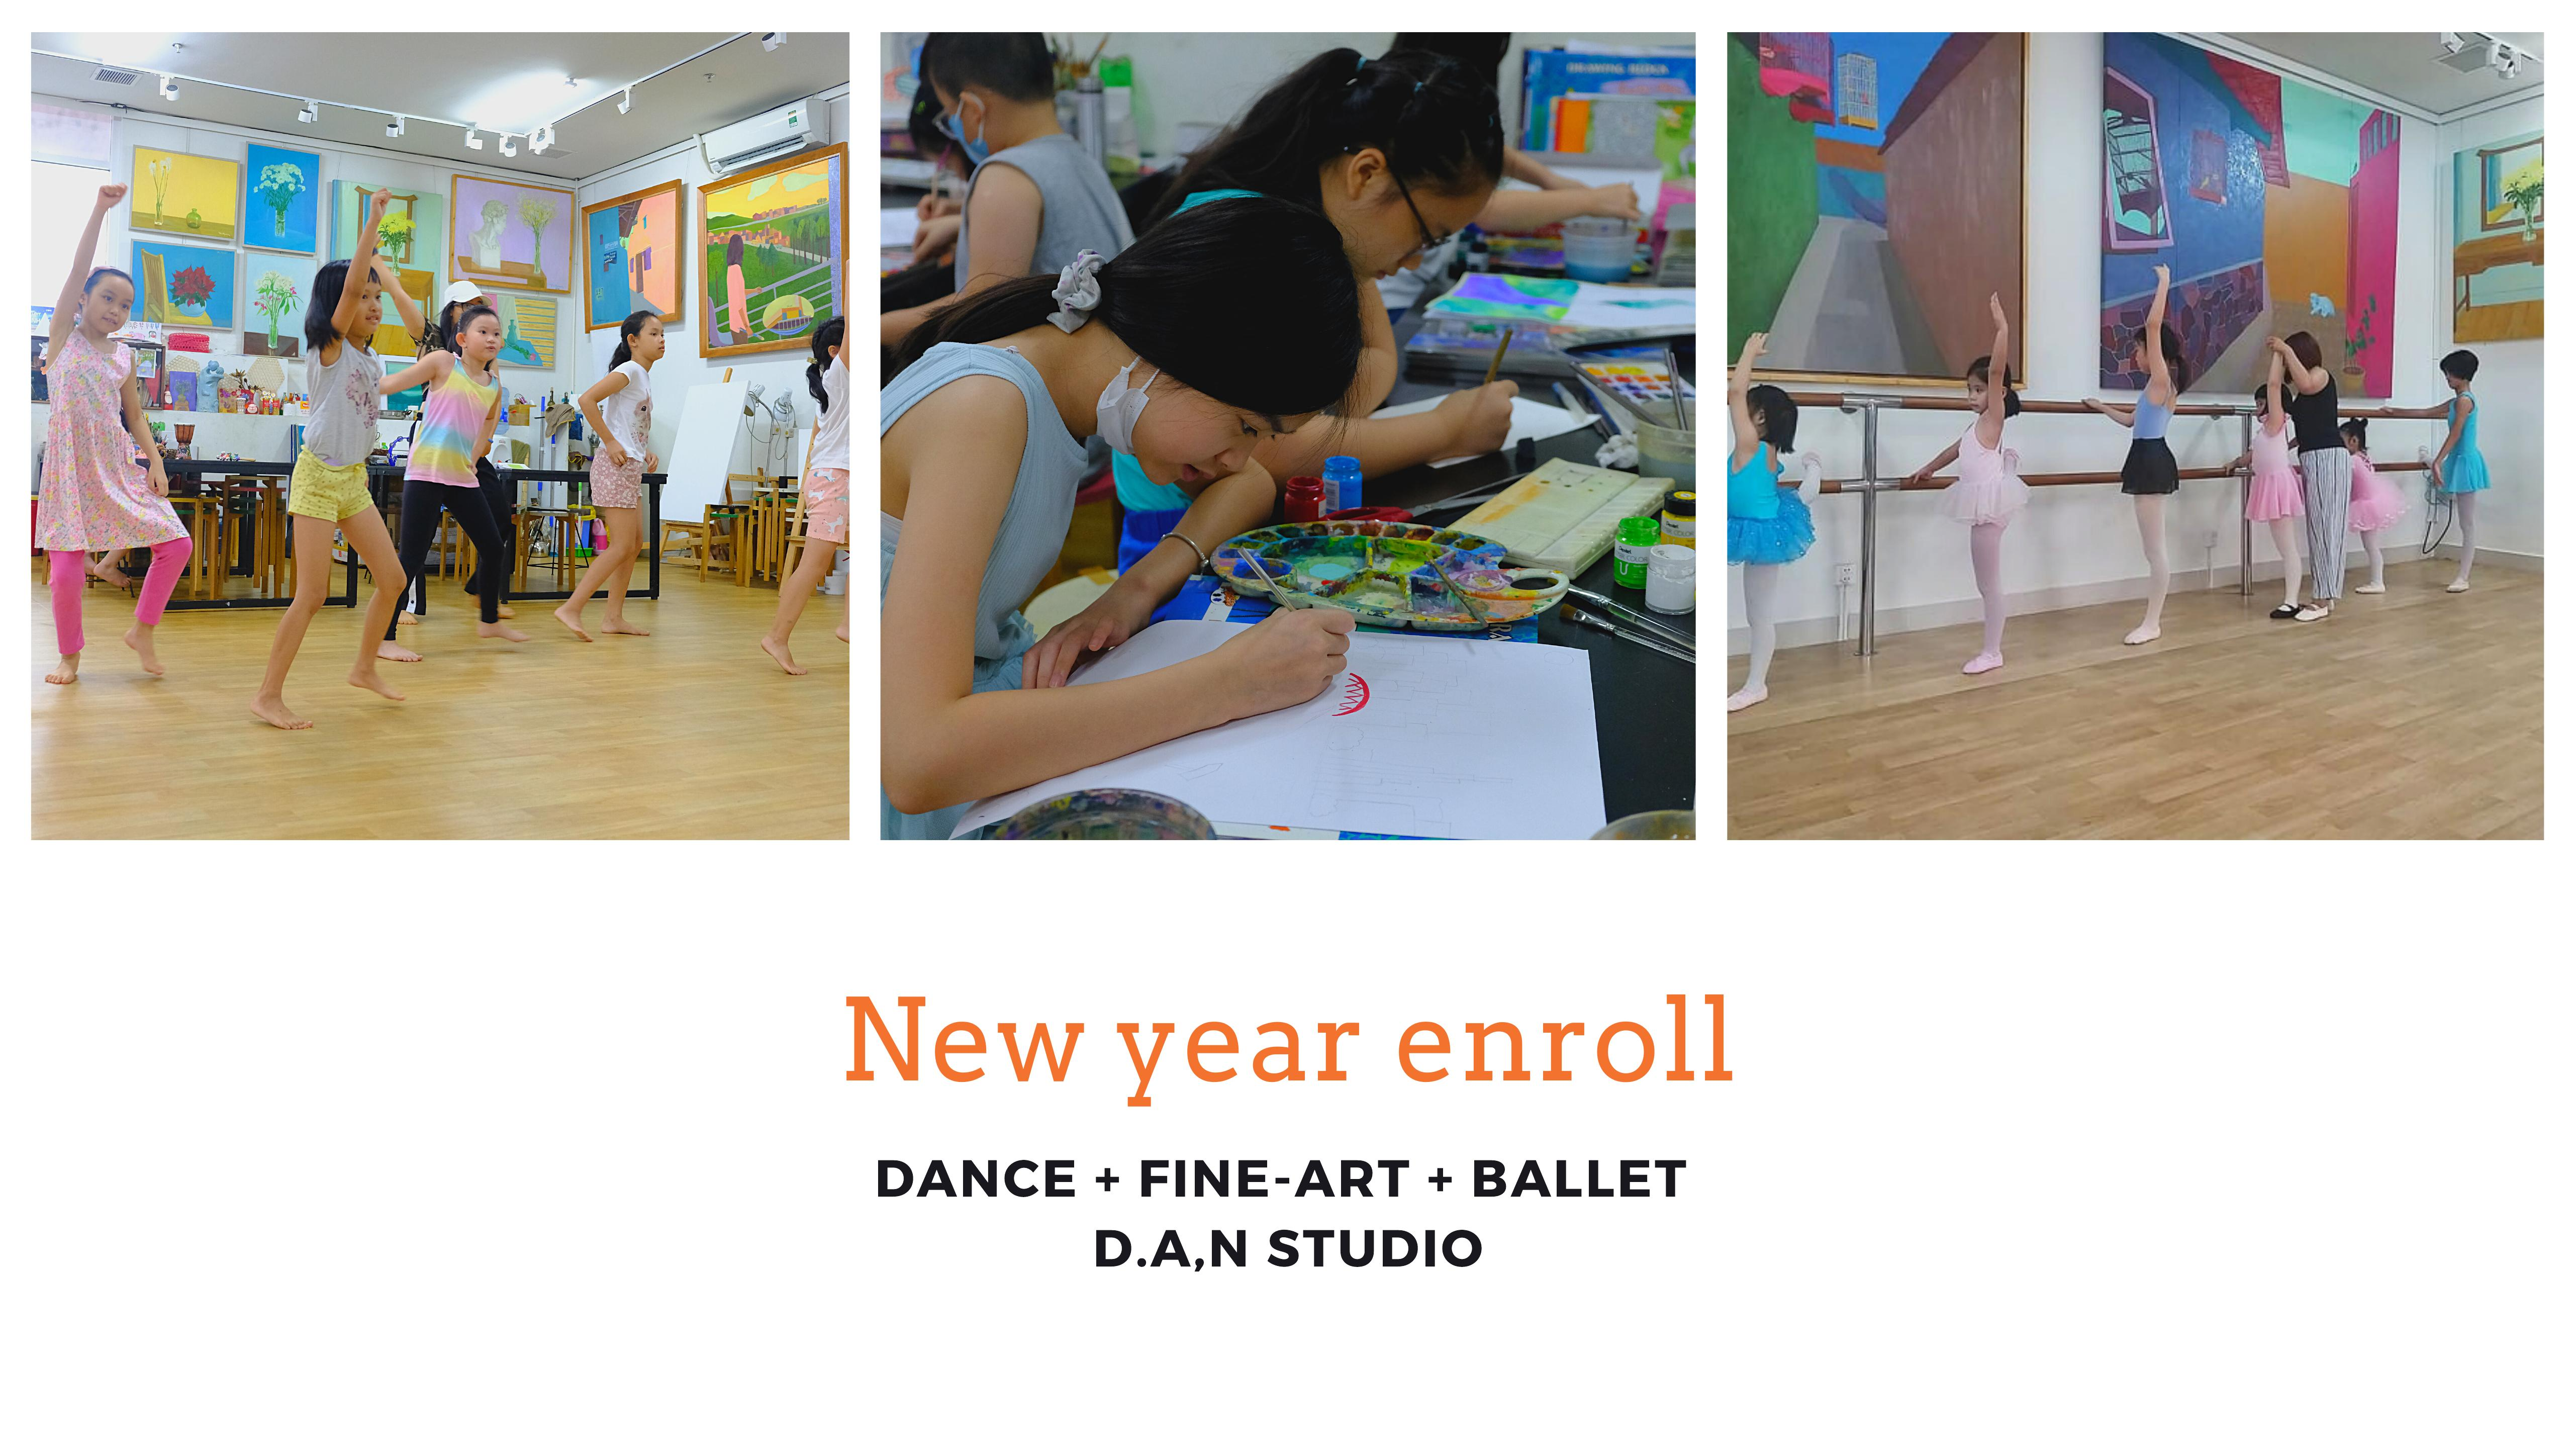 New year enroll